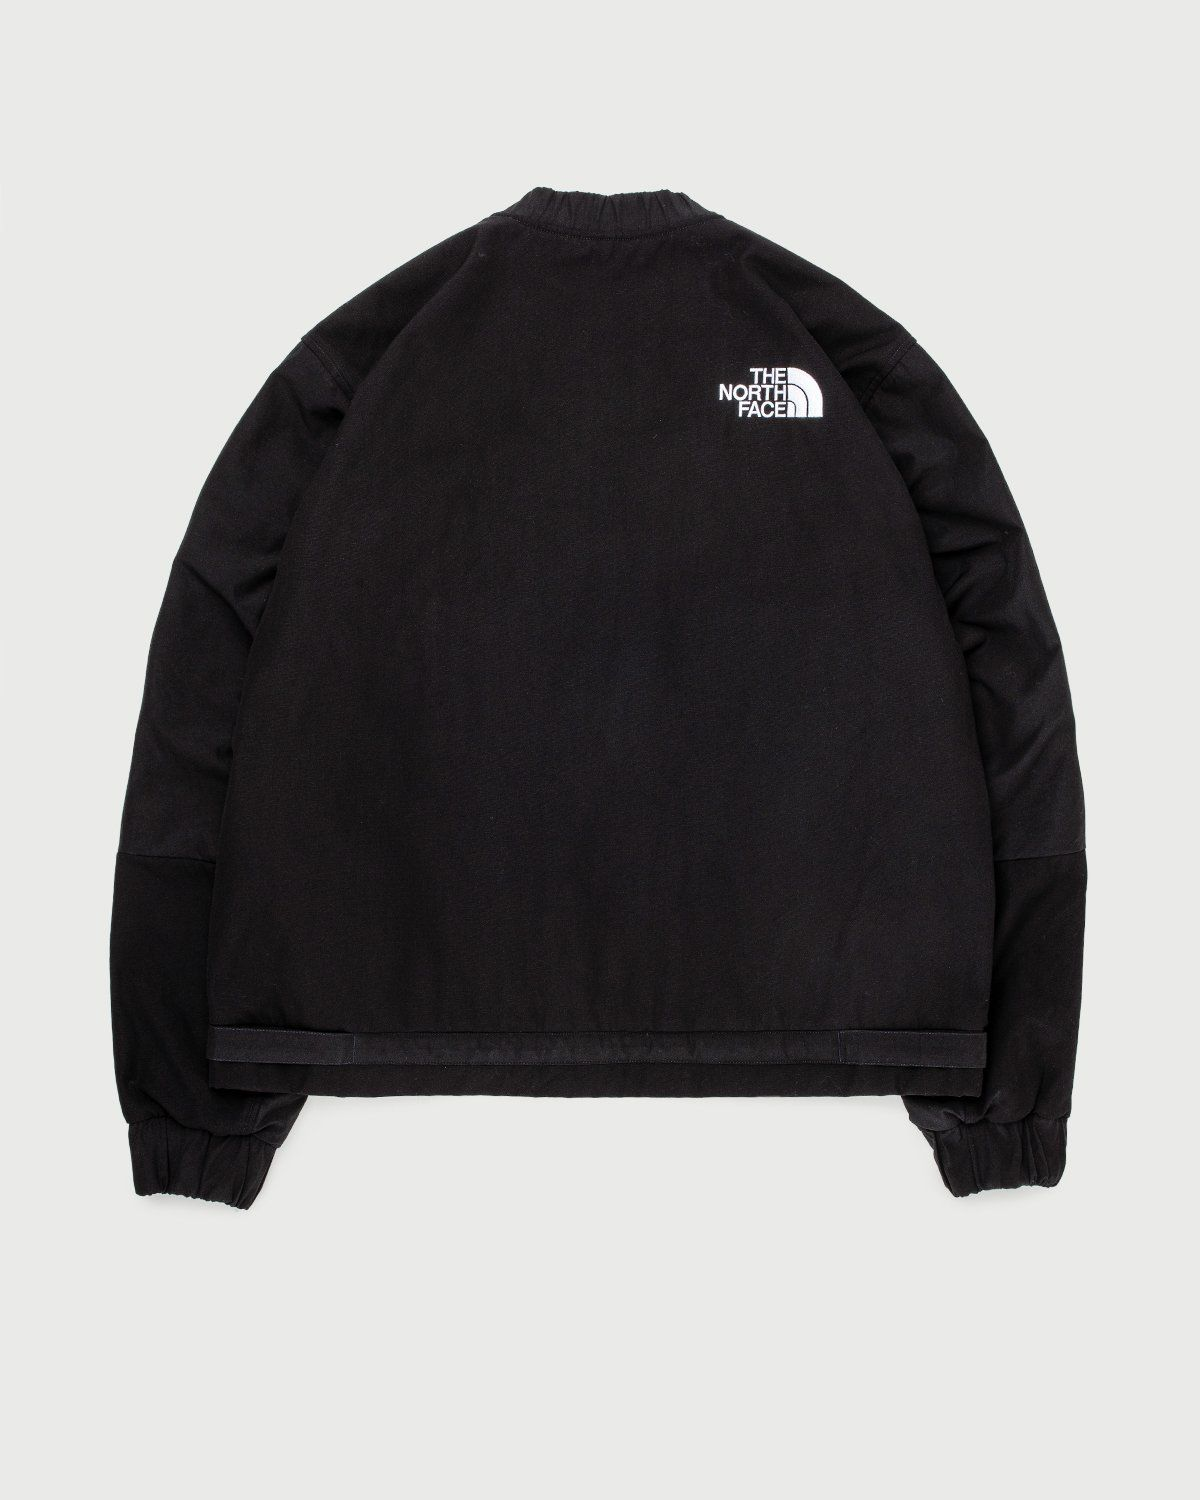 The North Face Black Series - Spectra® Blouson Jacket Black  - Image 5